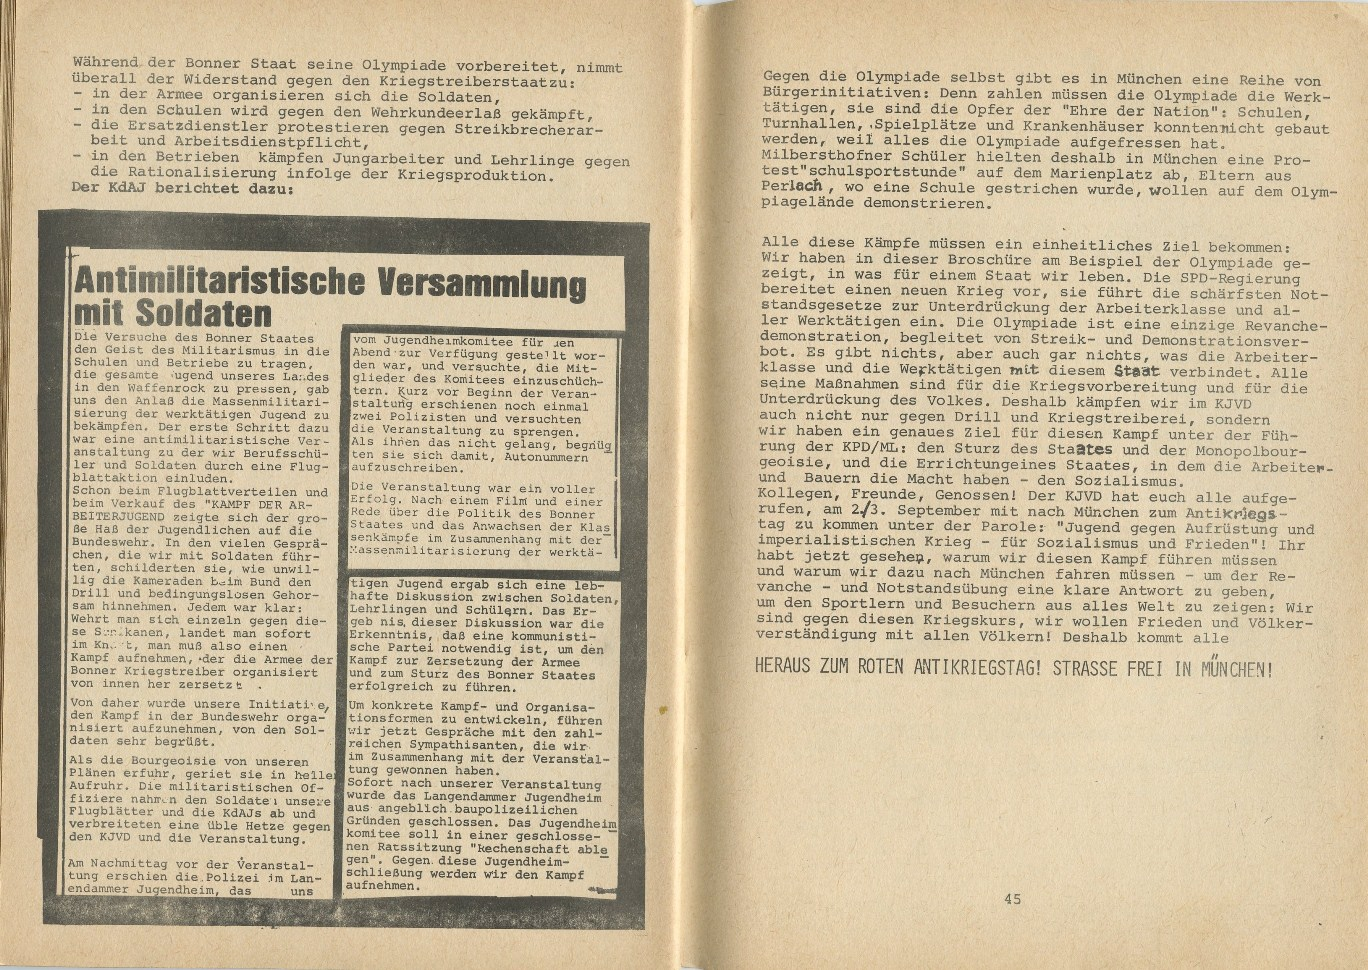 ZB_PBL_Roter_Antikriegstag_1972_24